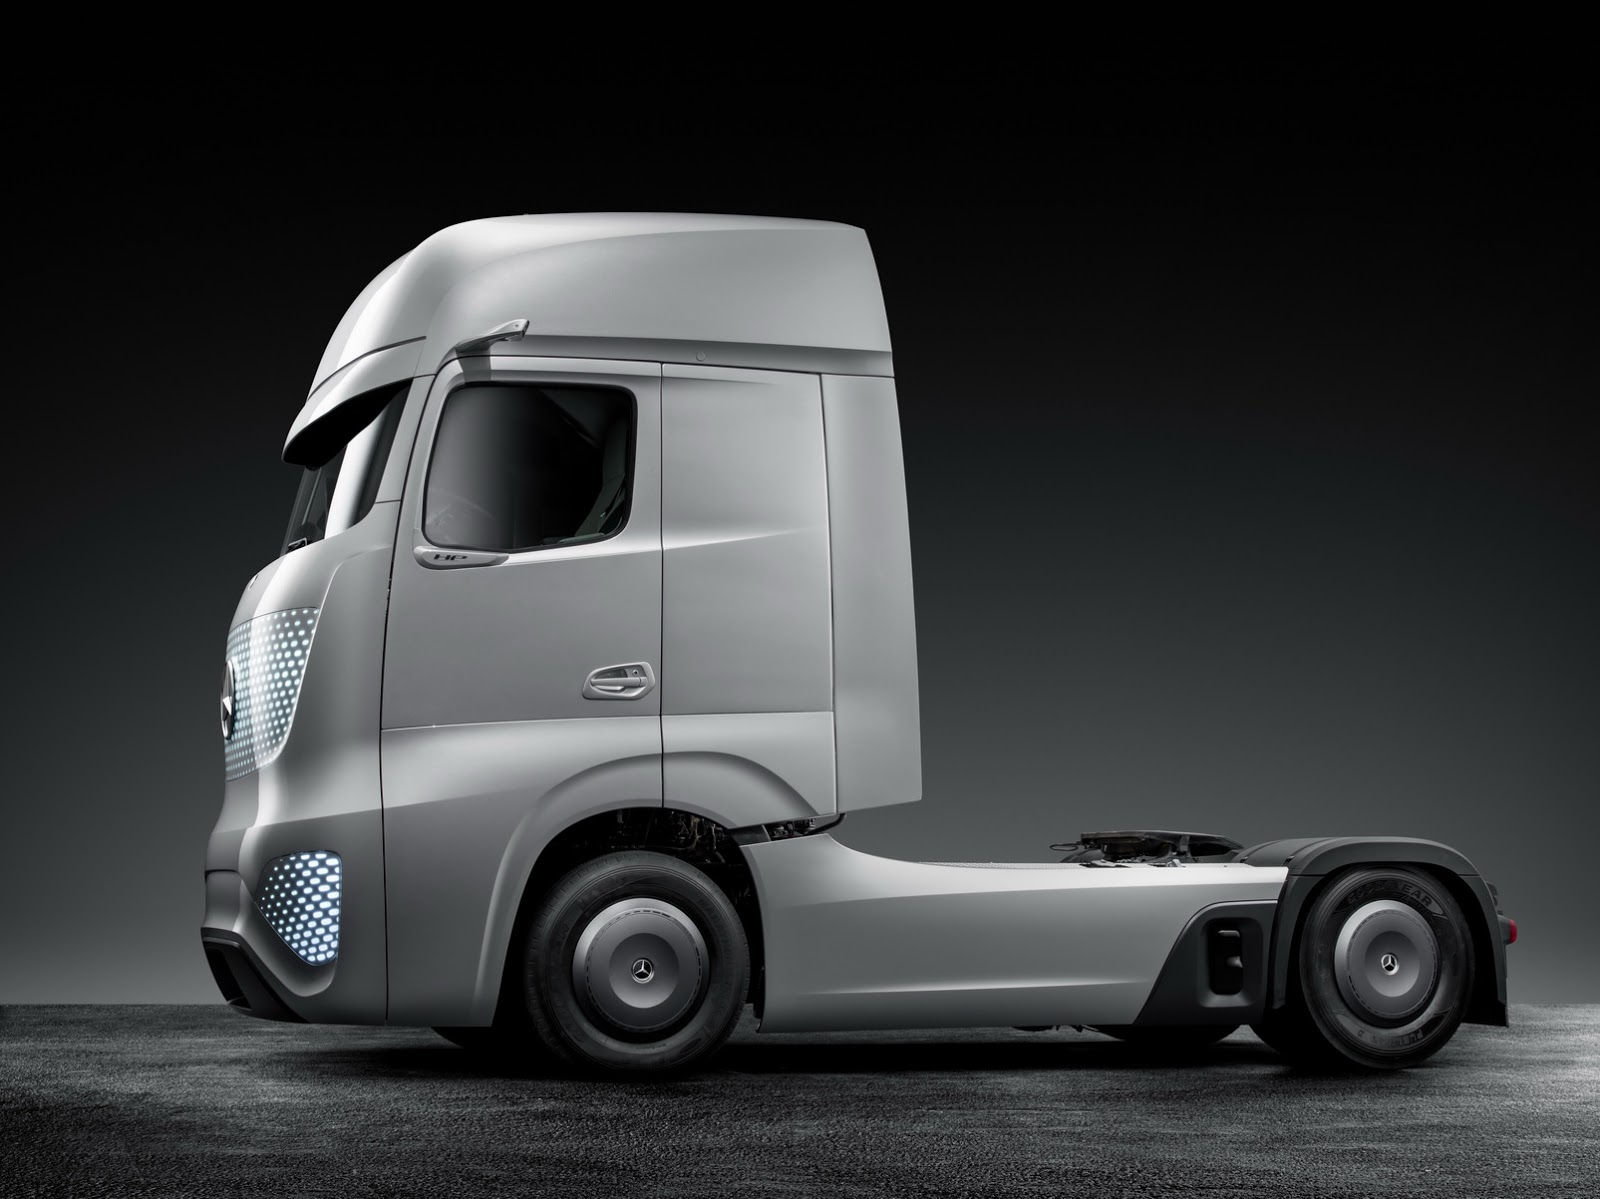 2025: Mercedes' 2025 Concept Truck Comes From The Future [65